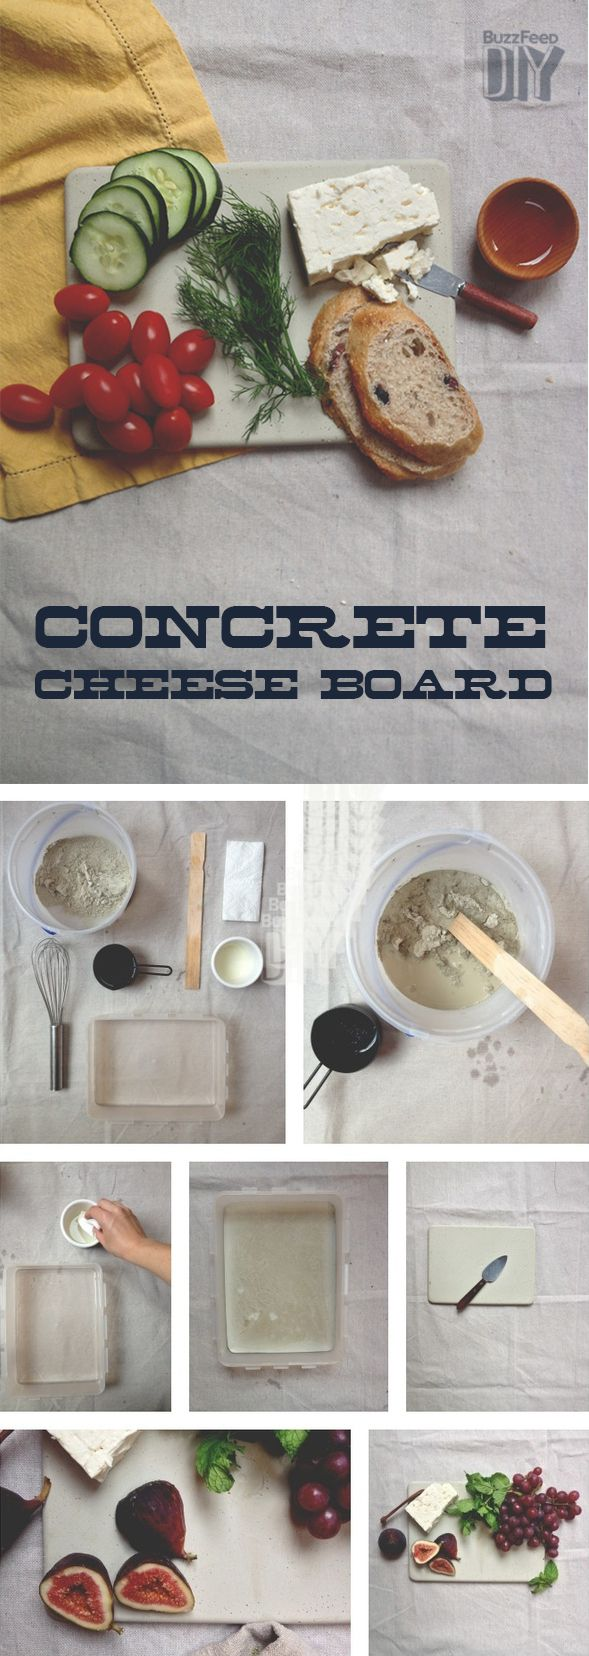 """<a href=""""http://www.buzzfeed.com/pippa/cheeseboards-to-impress-your-guests"""" target=""""_blank""""><strong>DIY Concrete Cheese Board via A Daily Something</strong></a>"""